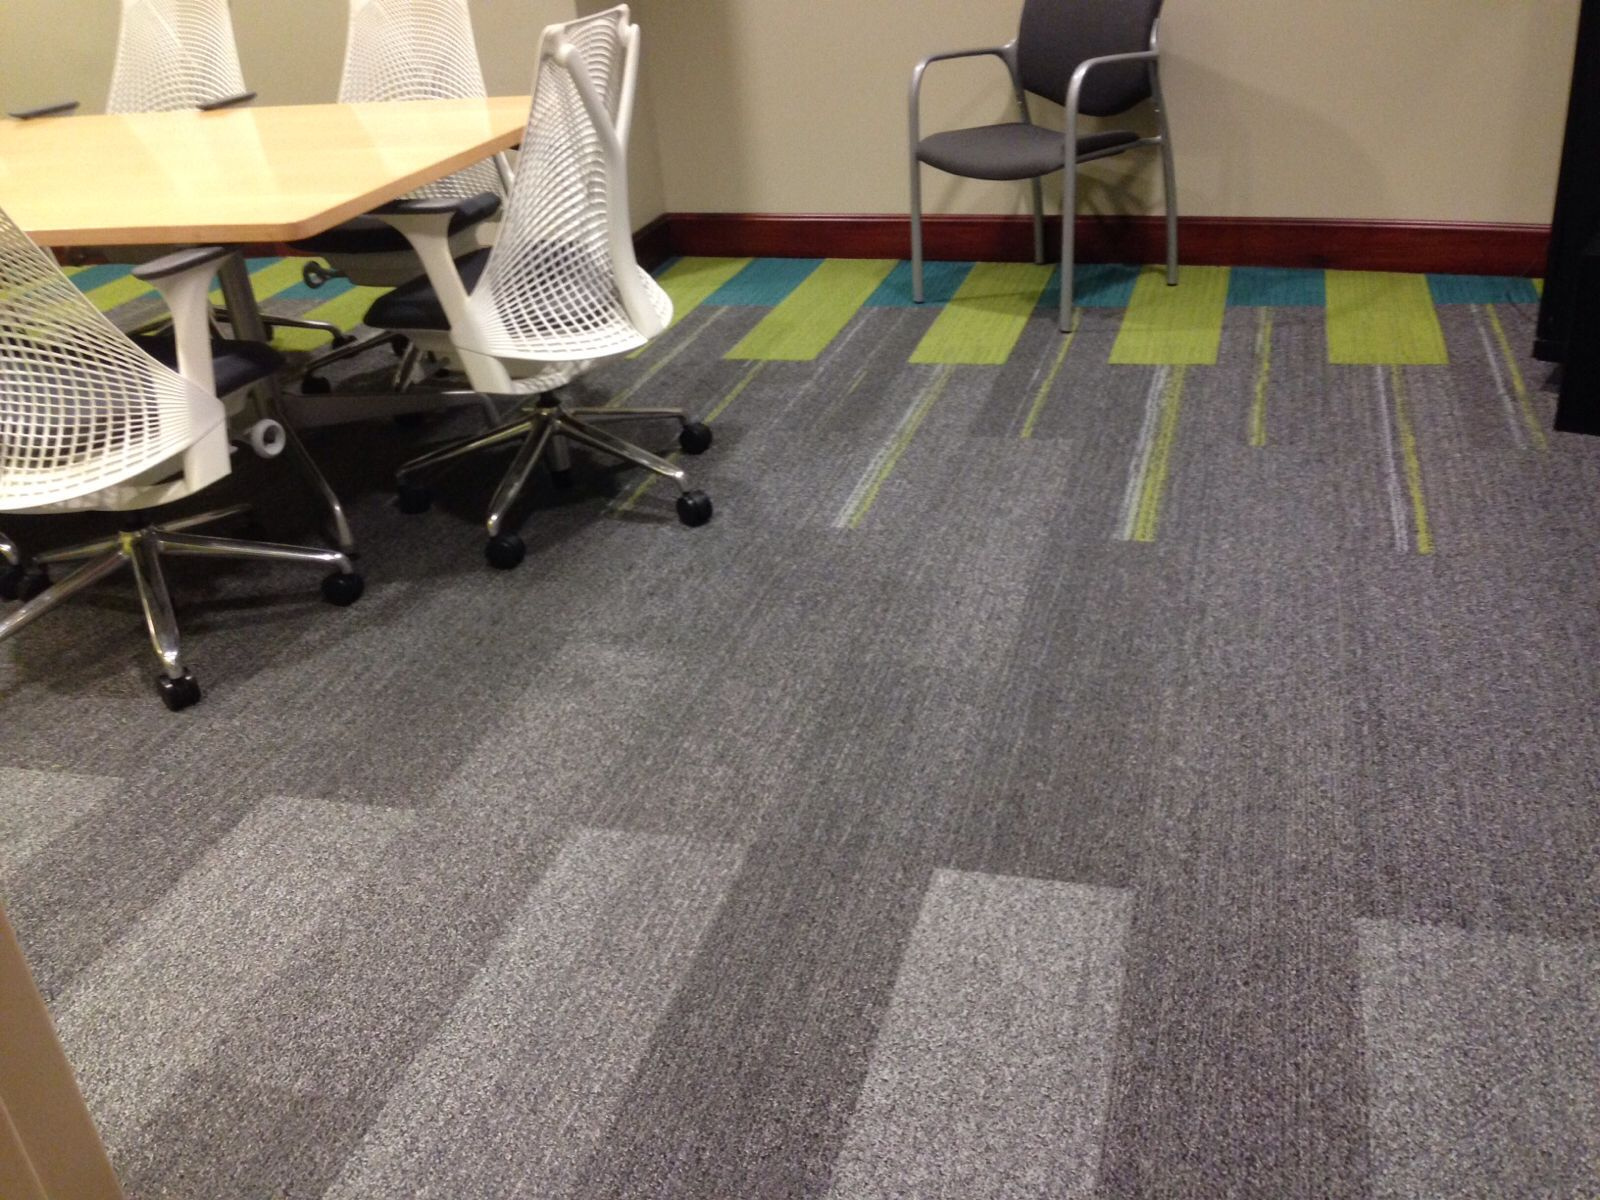 Interface Ground Waves Harmonize And On Line Carpet Tiles Design Interface